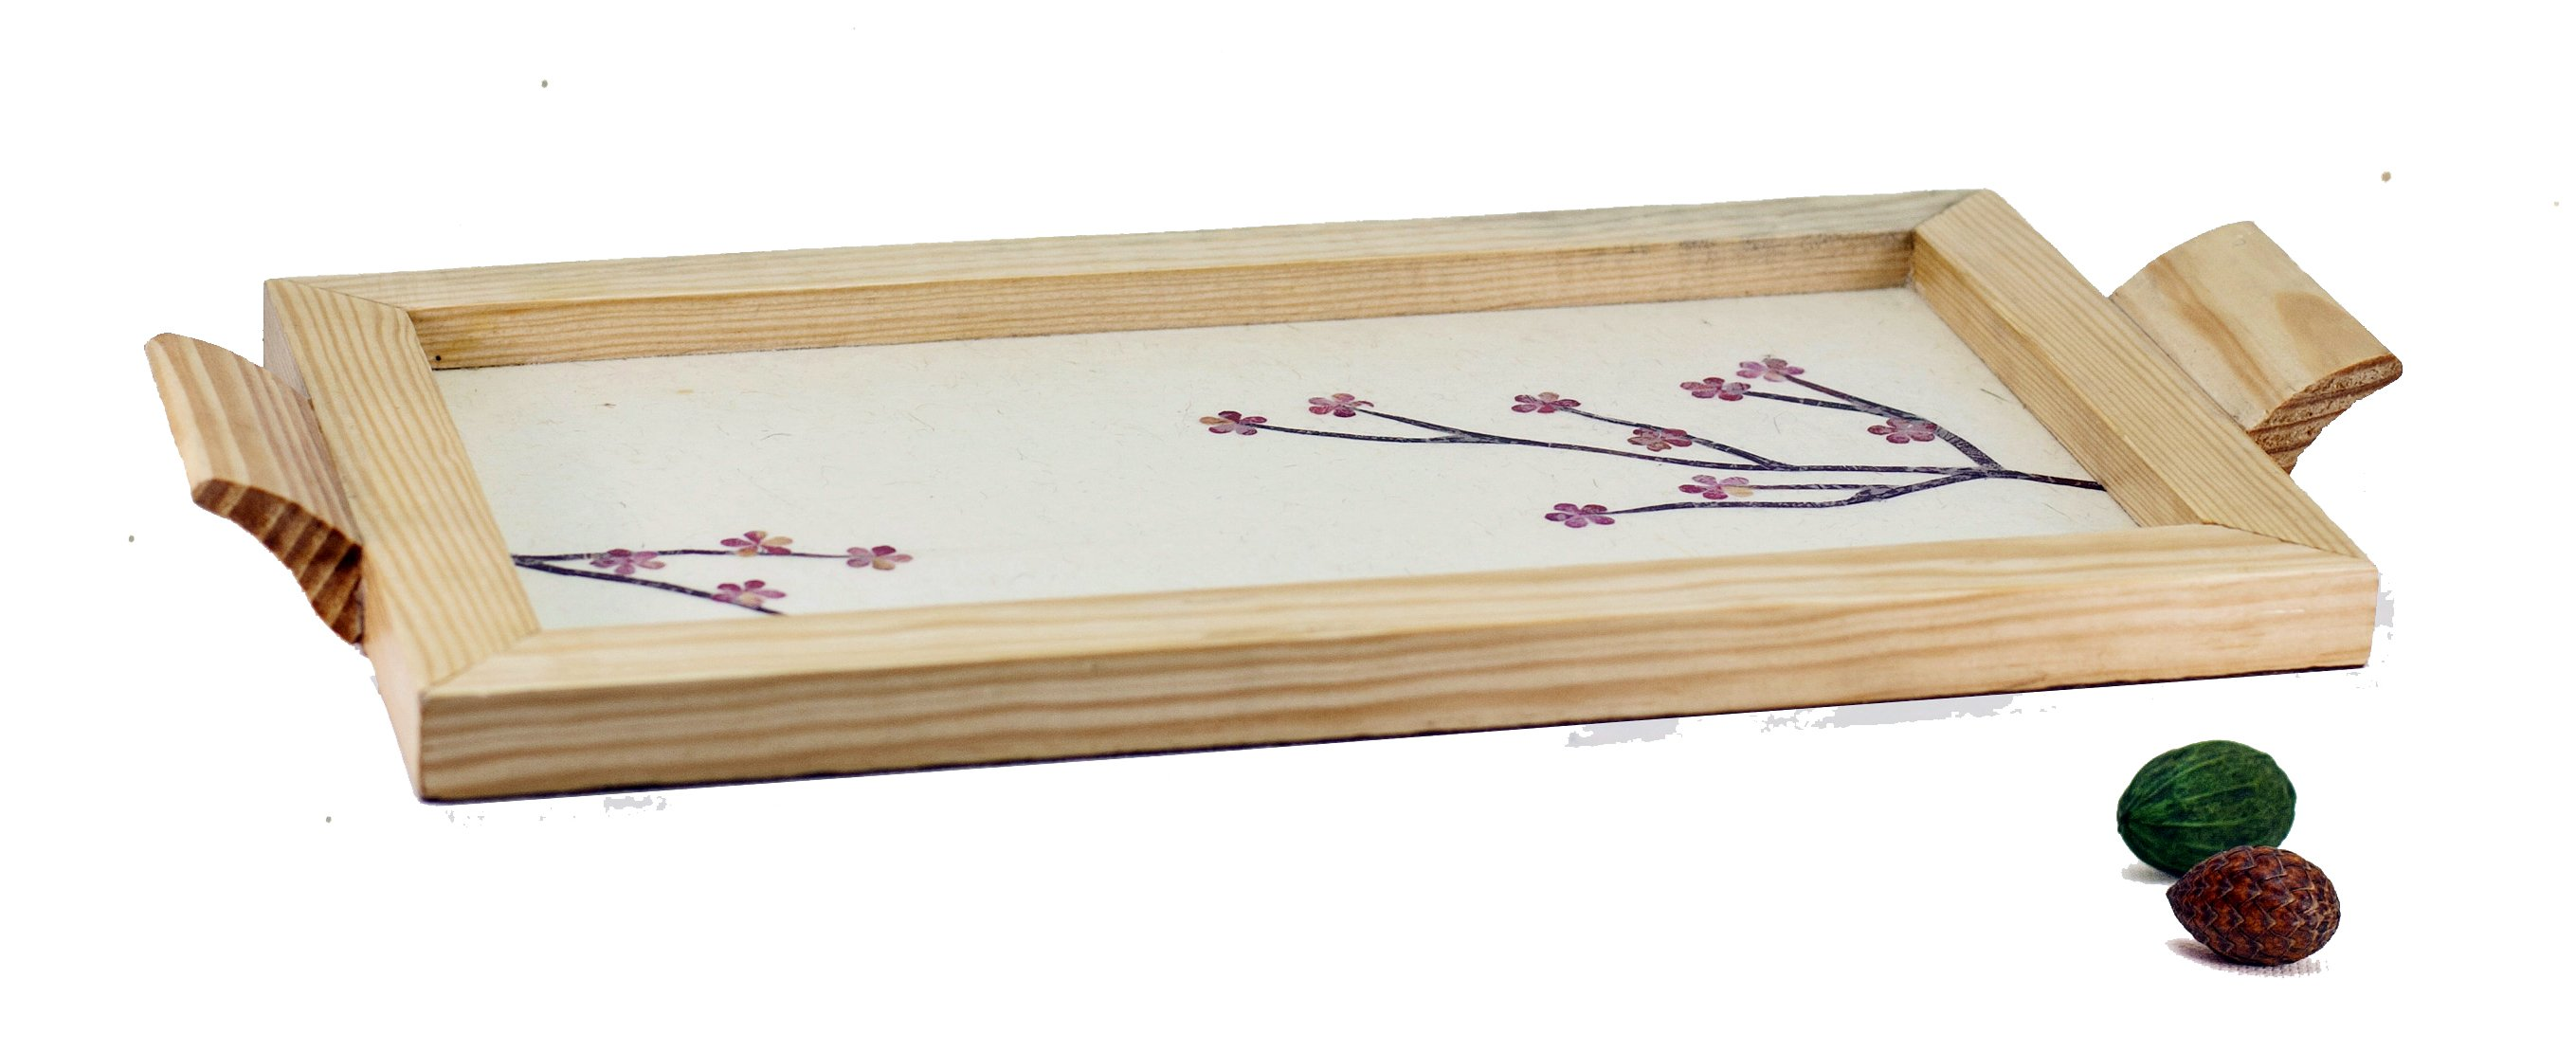 Handmade Upcycled Floral Wooden Tray